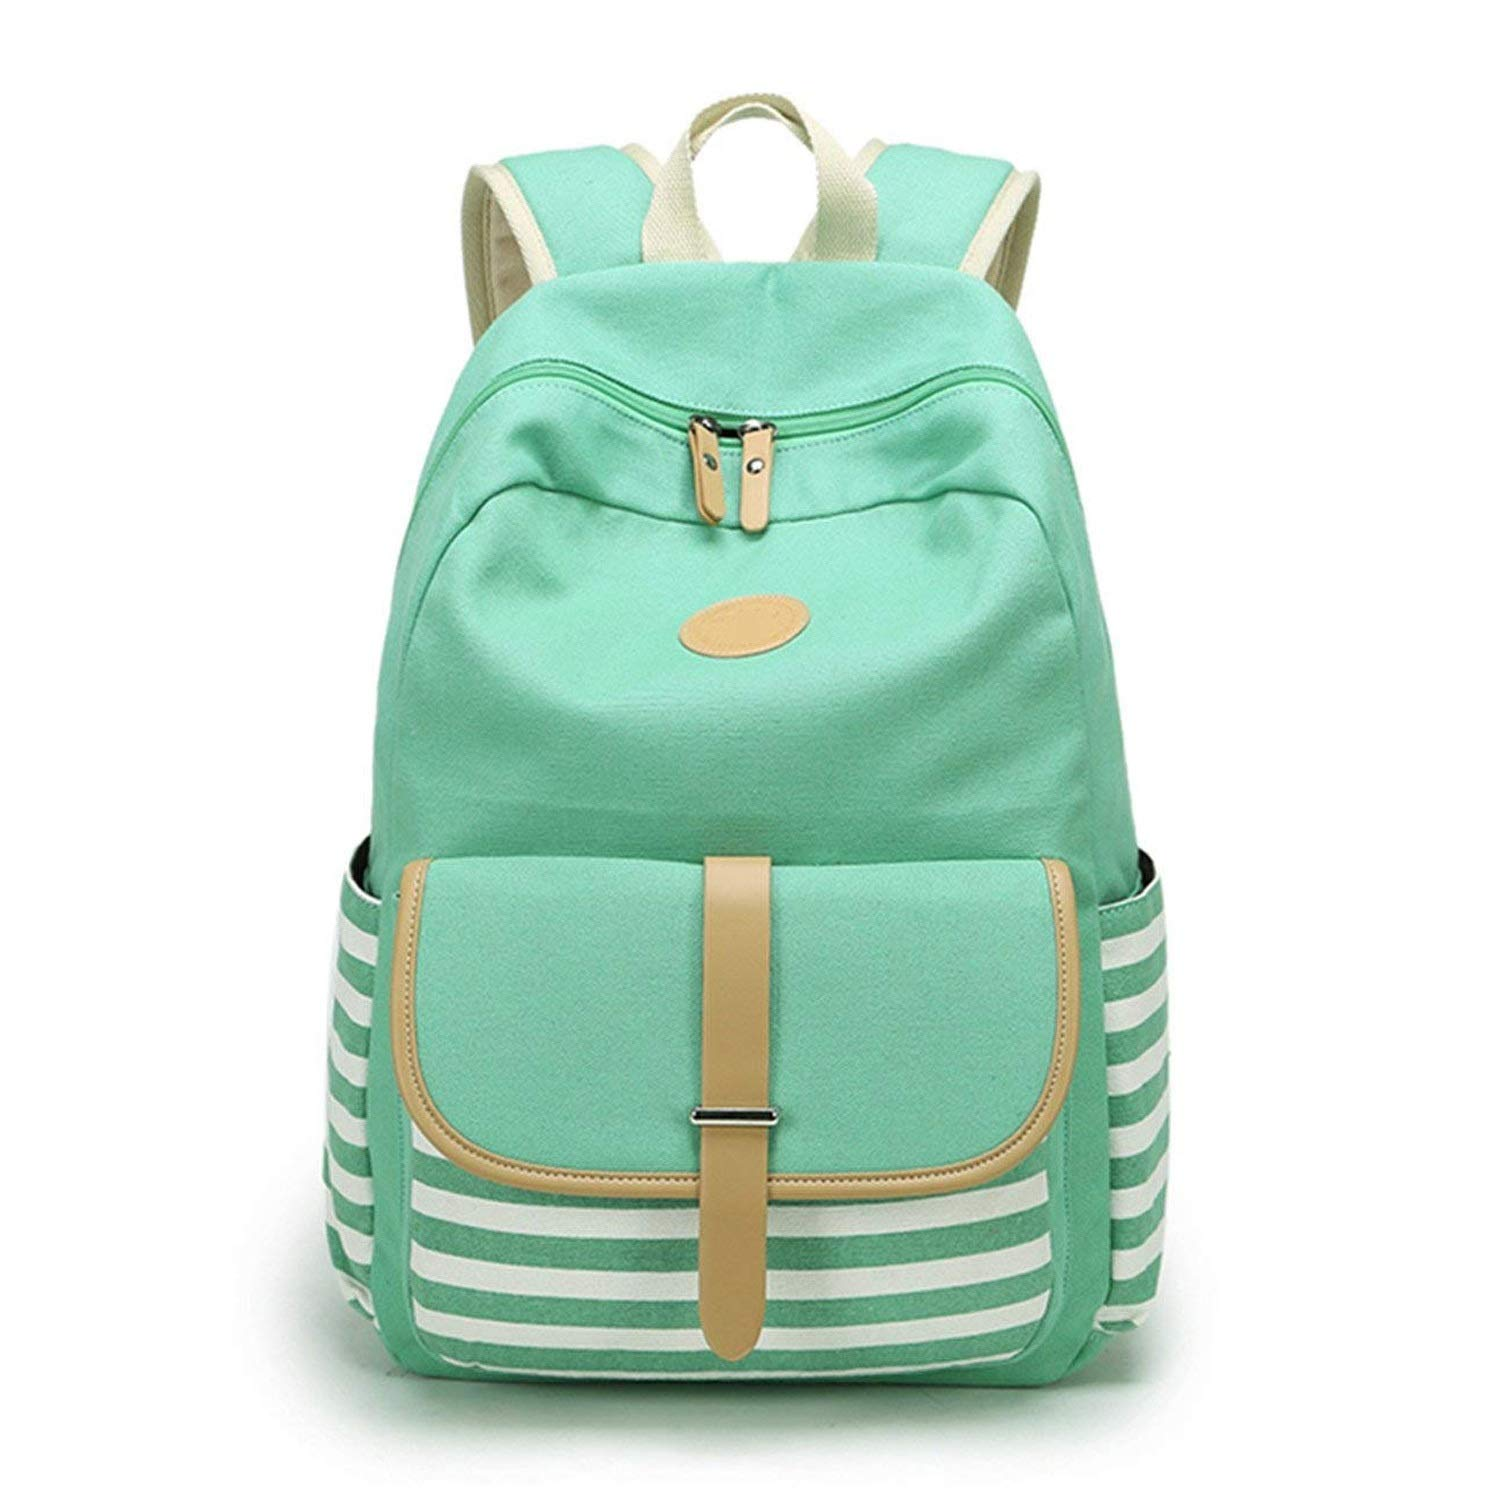 A 1417.15.4 inches BackpackStriped Student Backpack LargeCapacity Leisure Travel Canvas Bag (Black and Green) (color   A, Size   14  17.1  5.4 inches)